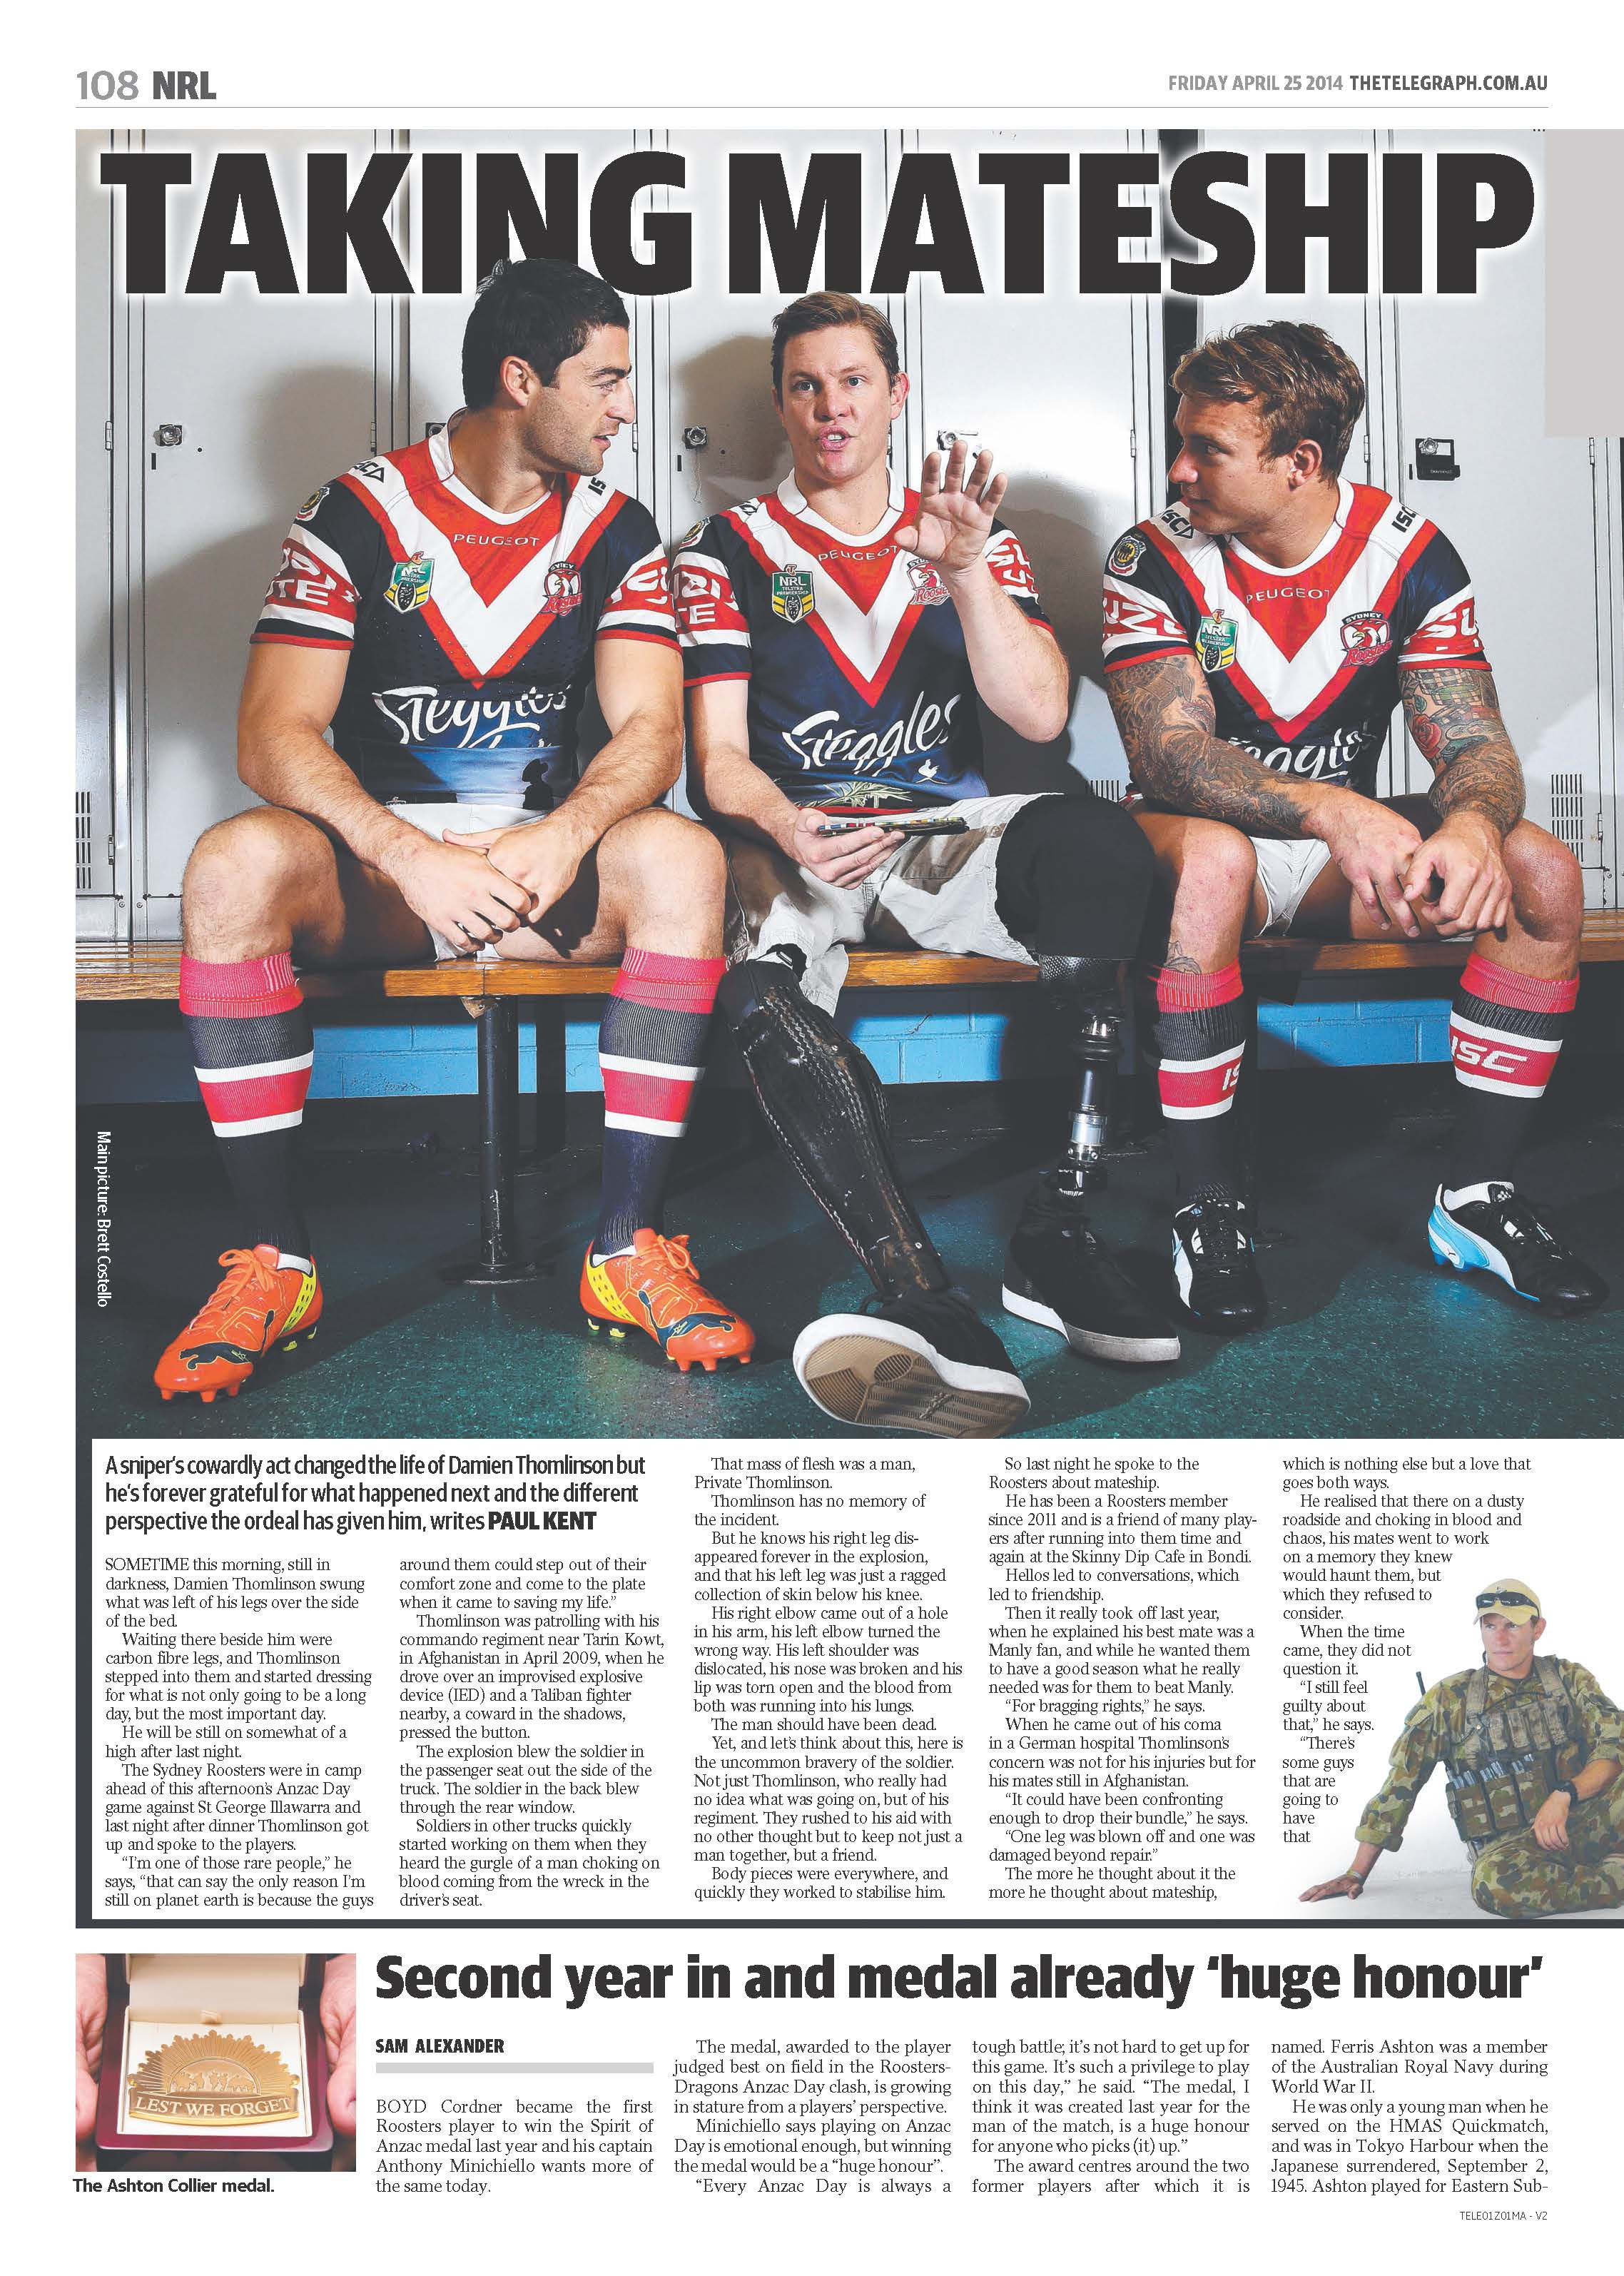 Damien teamed up with the Sydney Roosters NRL team to tell his story to The Daily Telegraph